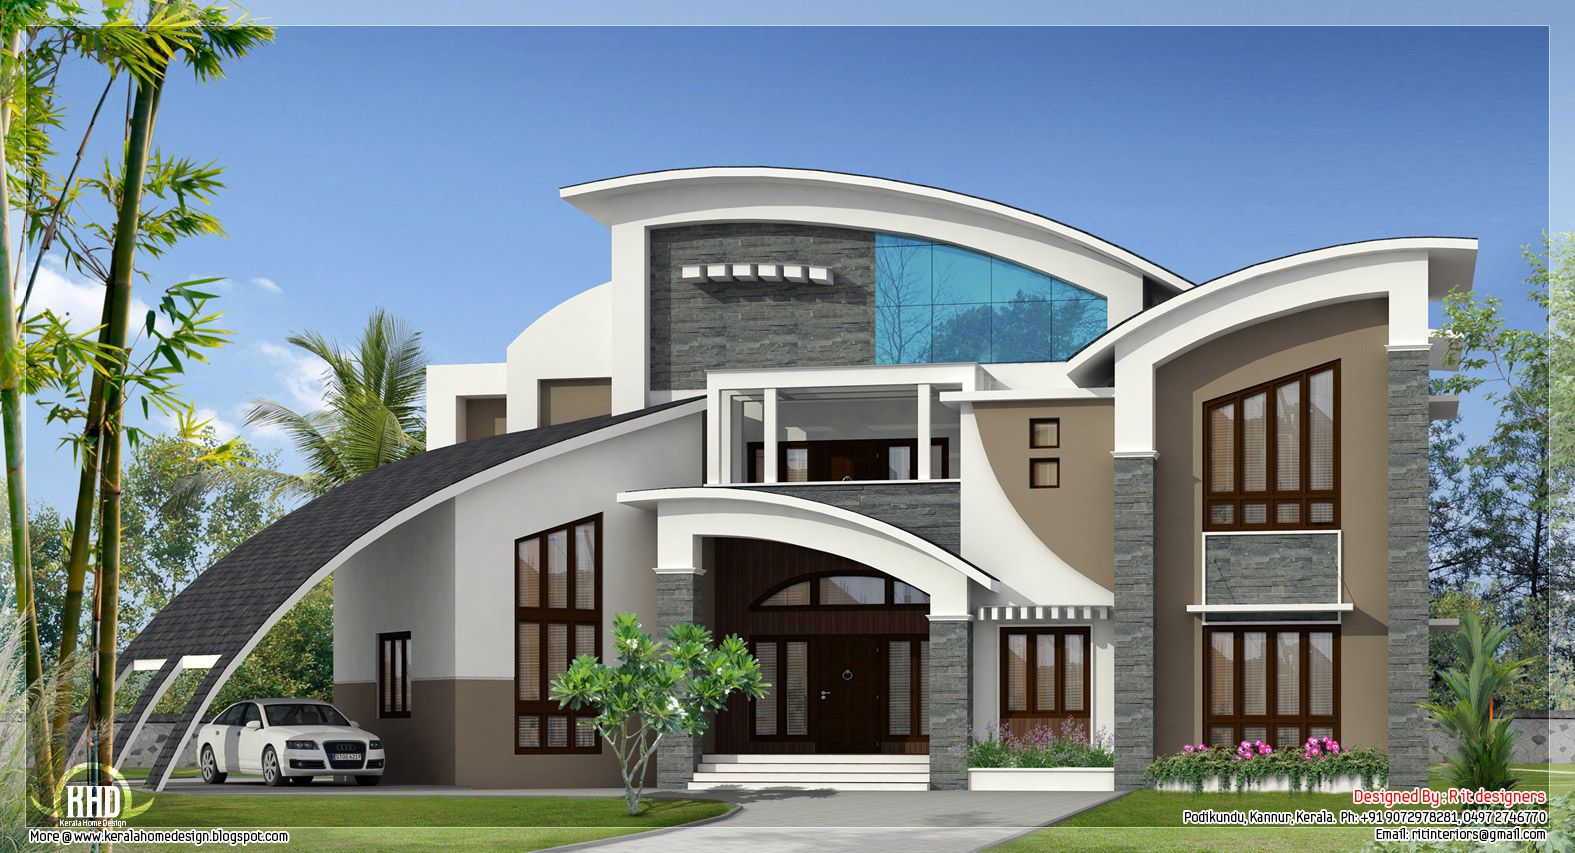 Unique homes unique super luxury kerala villa home sweet home architect sure pinterest - Cool home builders designs ...